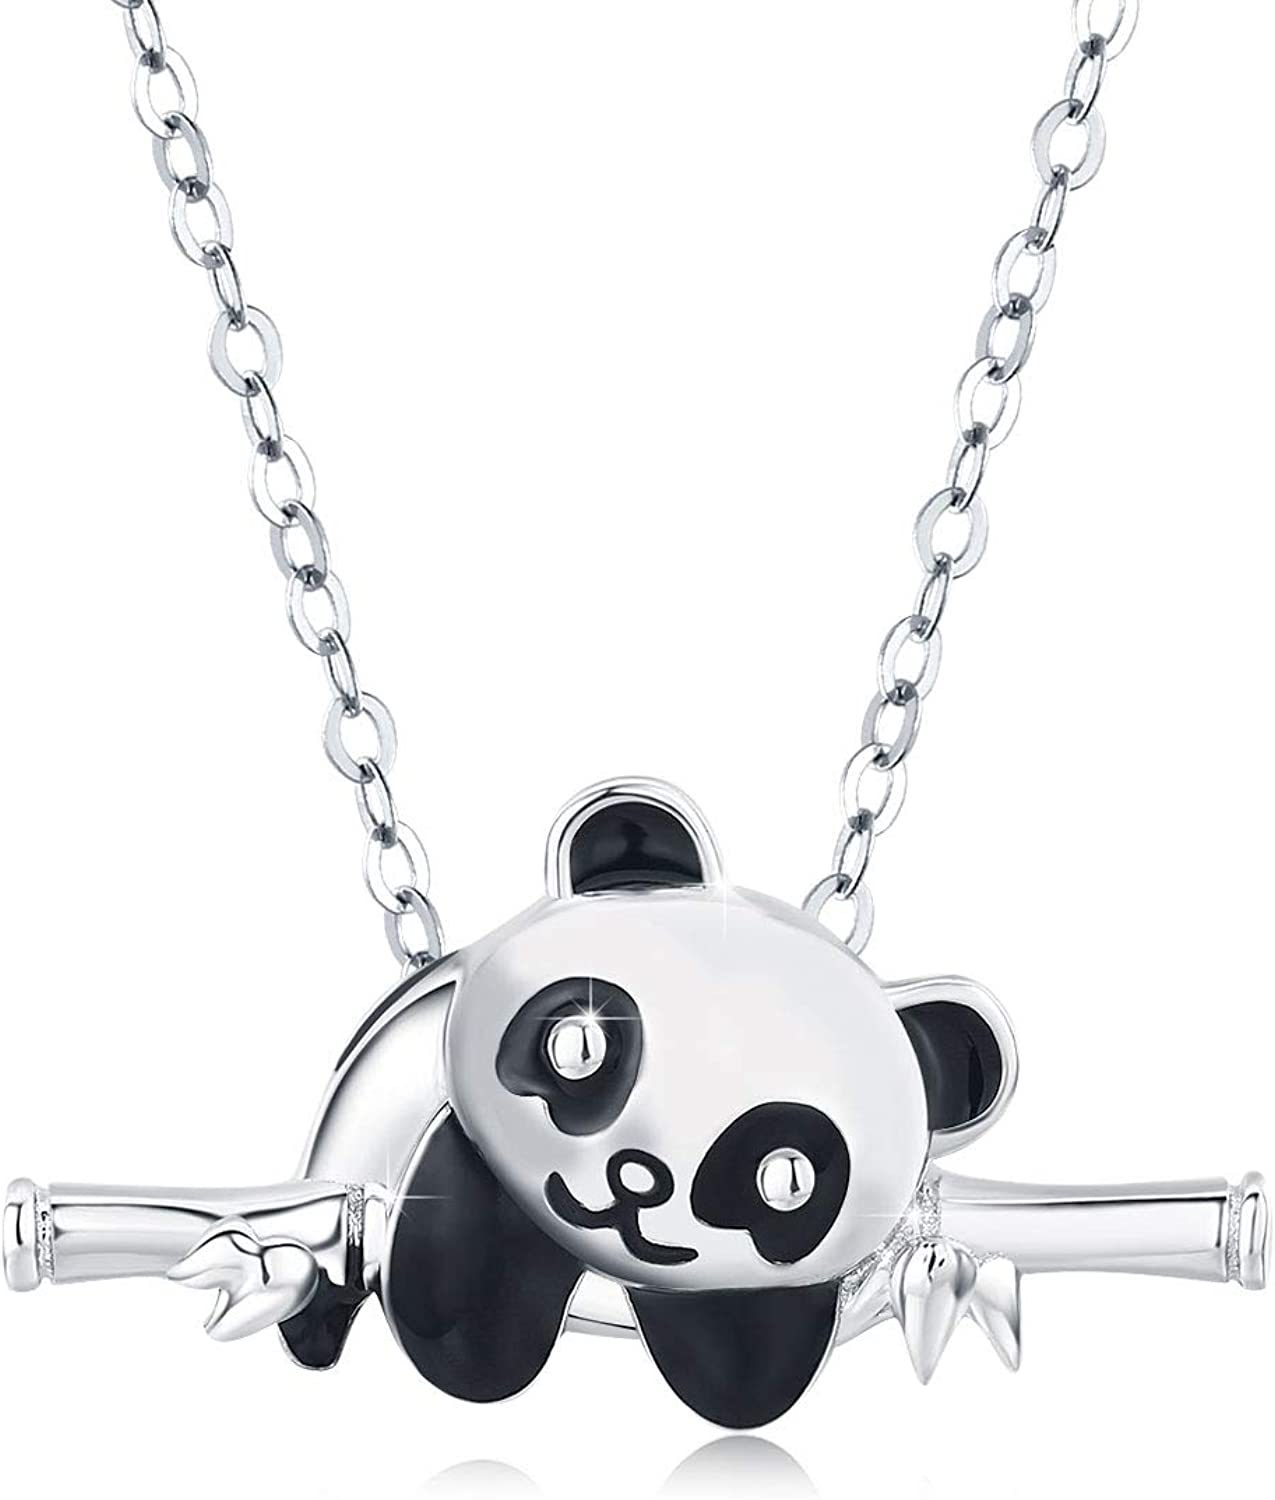 JUSTKIDSTOY Panda Necklace Gifts for Mother's Day 925 Sterling Silver Cute Animal Heart Pendant - I Love You Forever Jewelry for Women Daughter Panda Lover